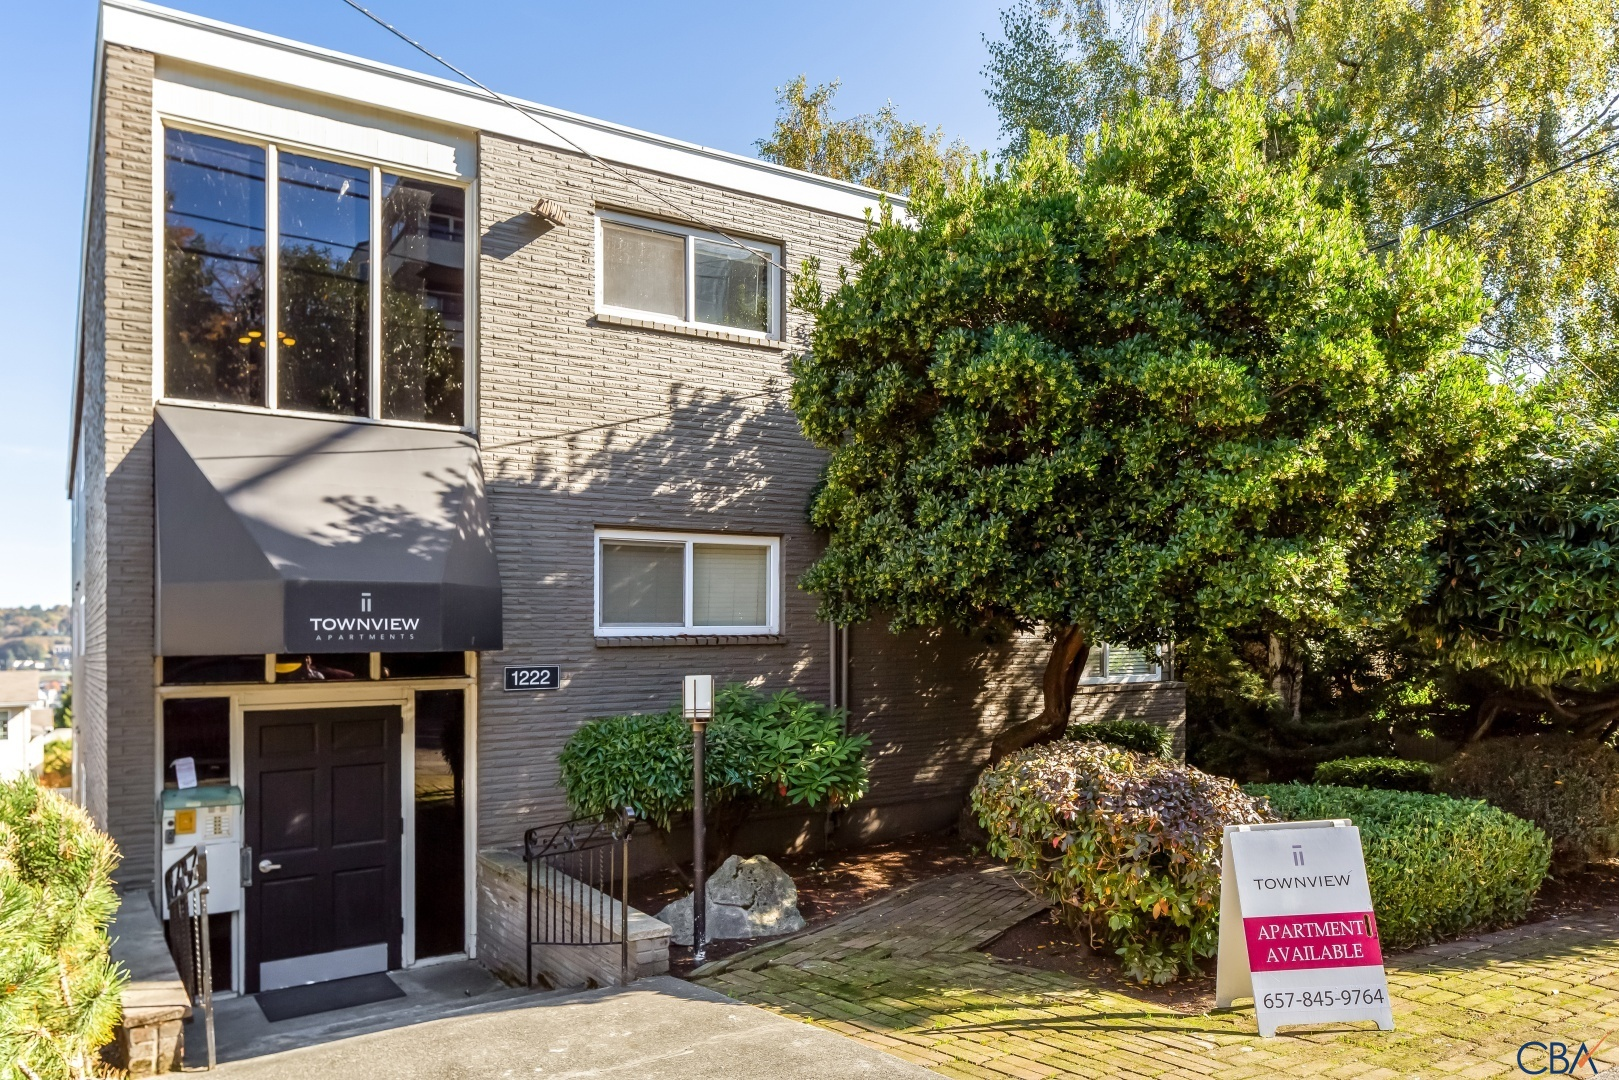 Primary Listing Image for MLS#: 603444